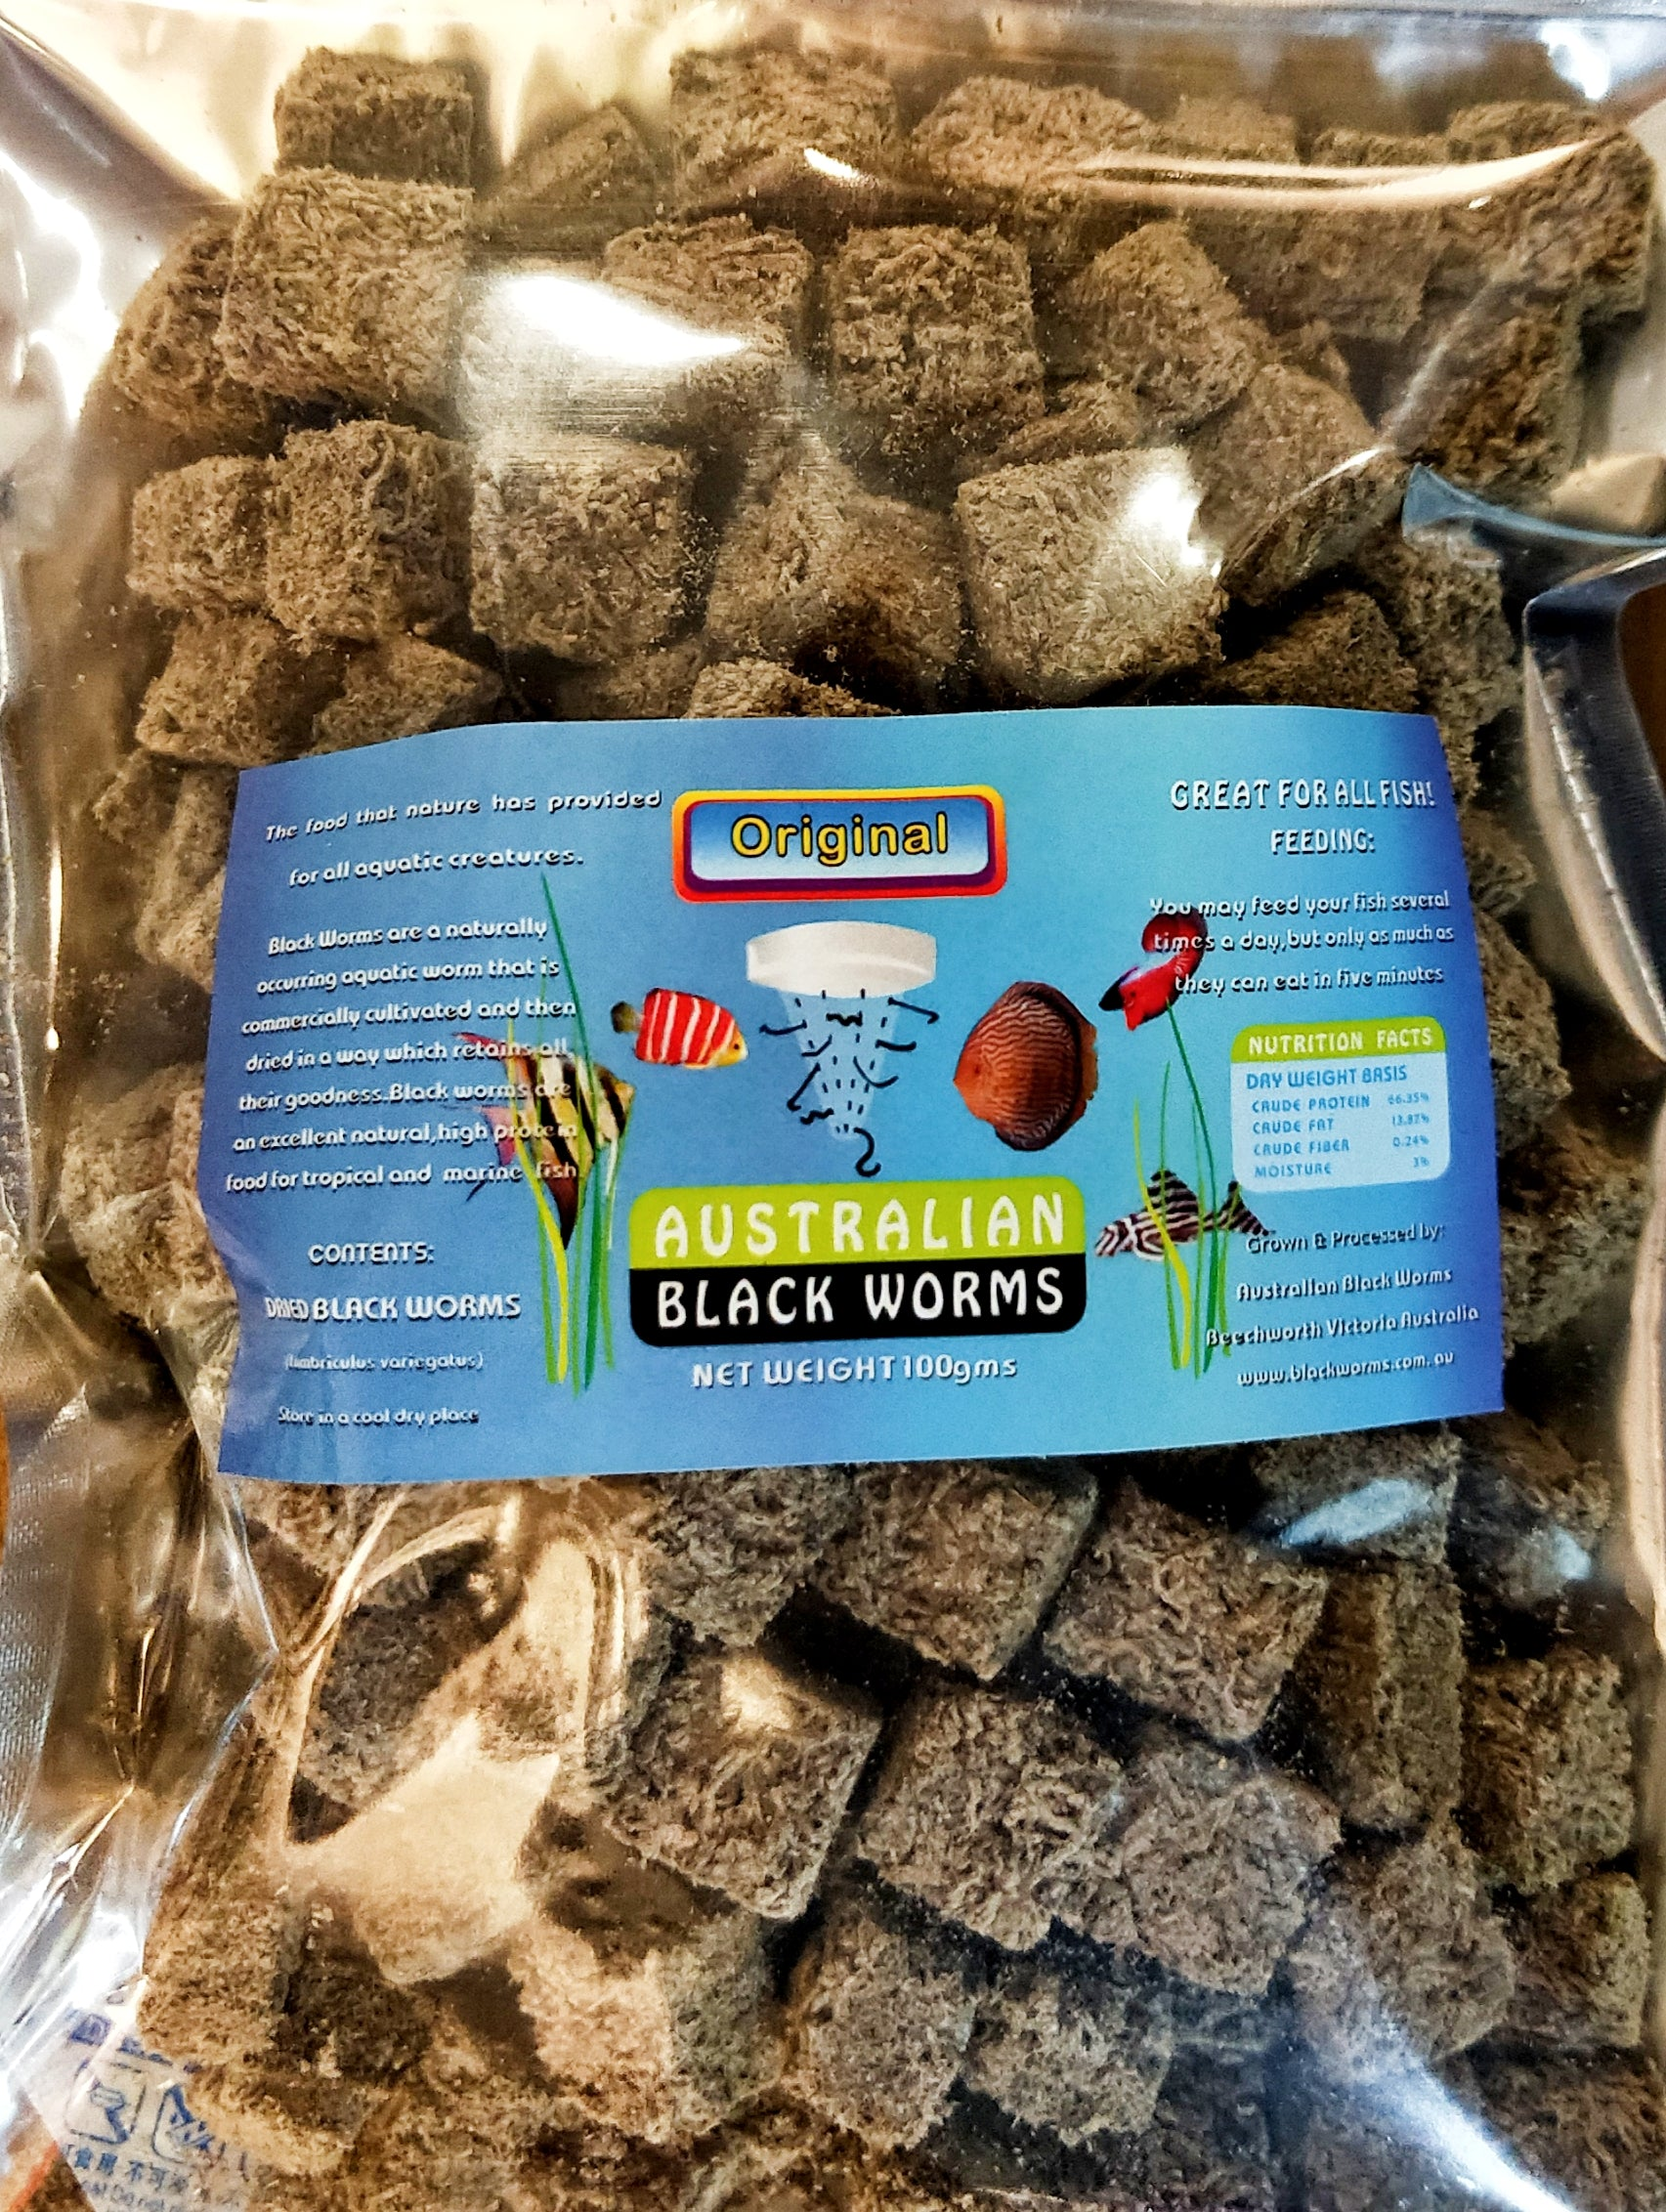 Australian Black Worms - Original